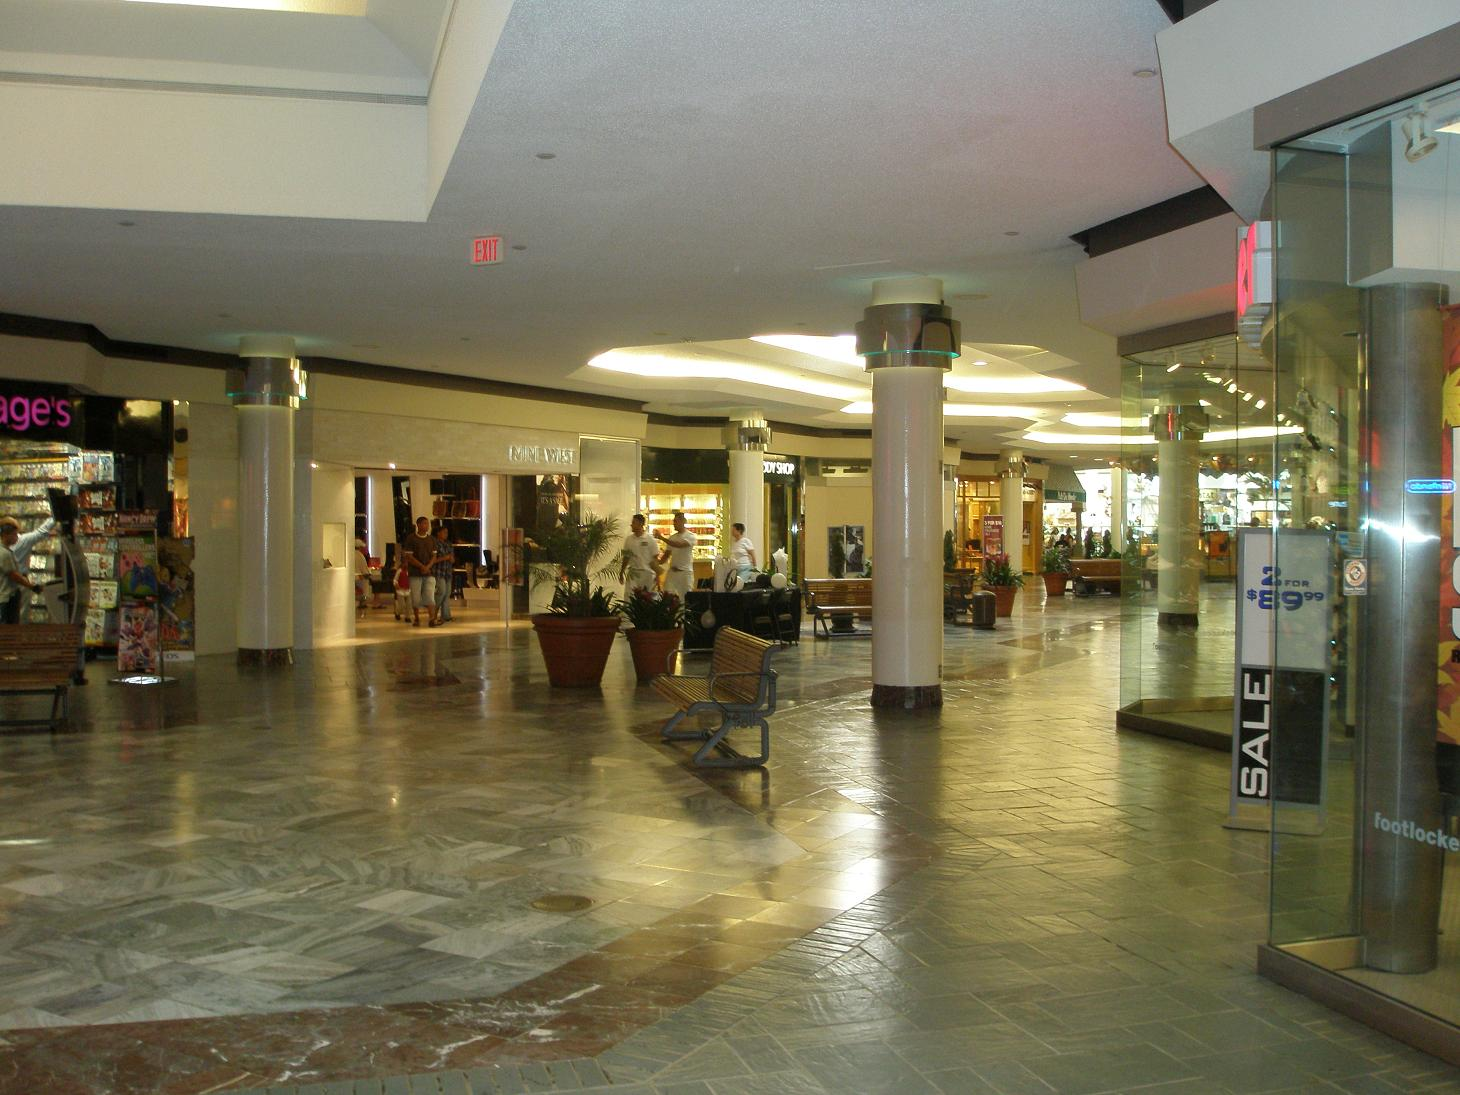 Lakeside Shopping Center; Metairie, Louisiana | Labelscar: The ...